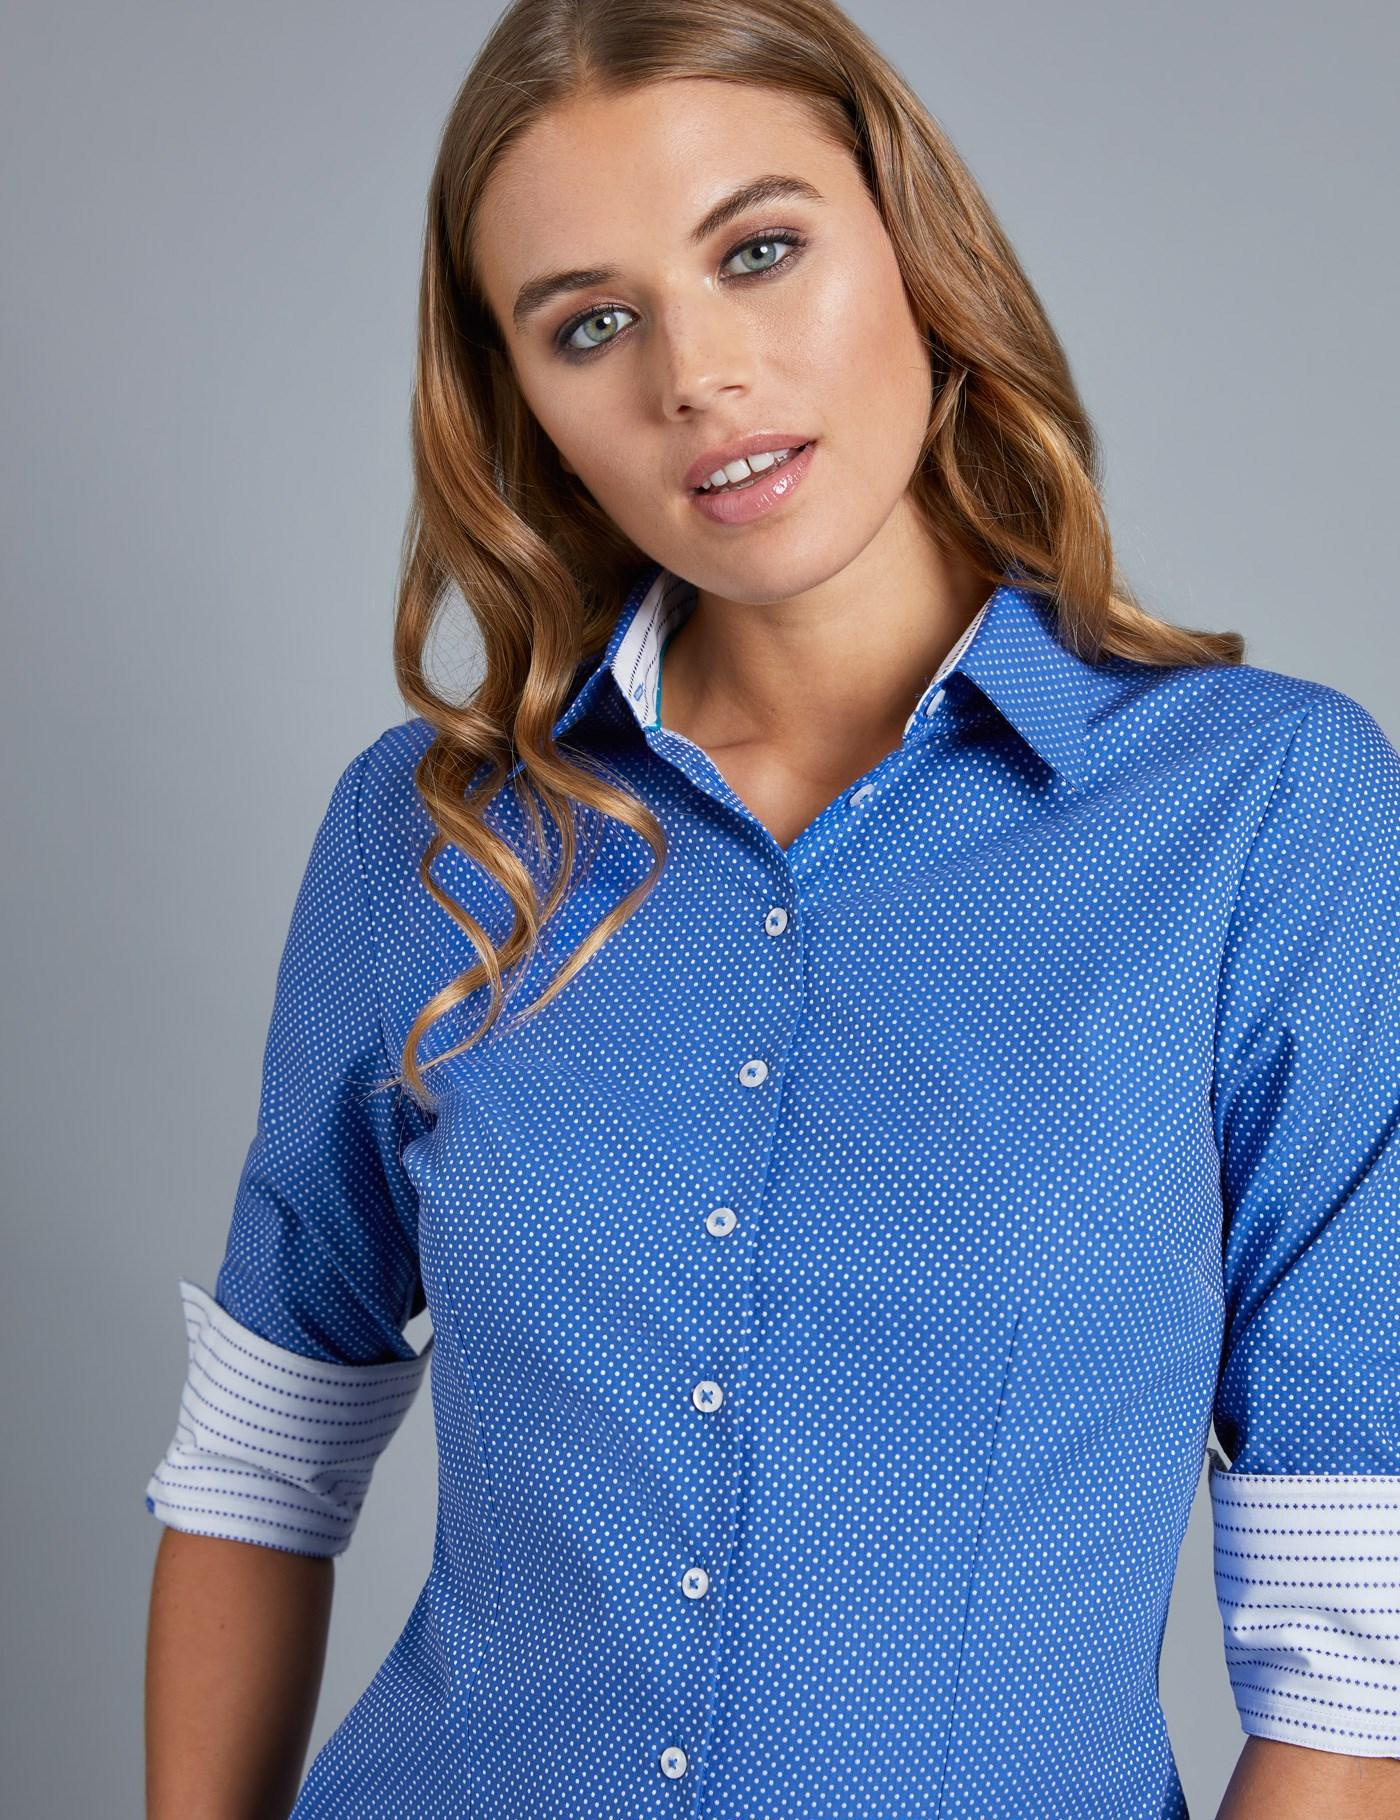 474013d2 Lyst - Hawes & Curtis Blue & White Dobby Fitted Shirt in Blue